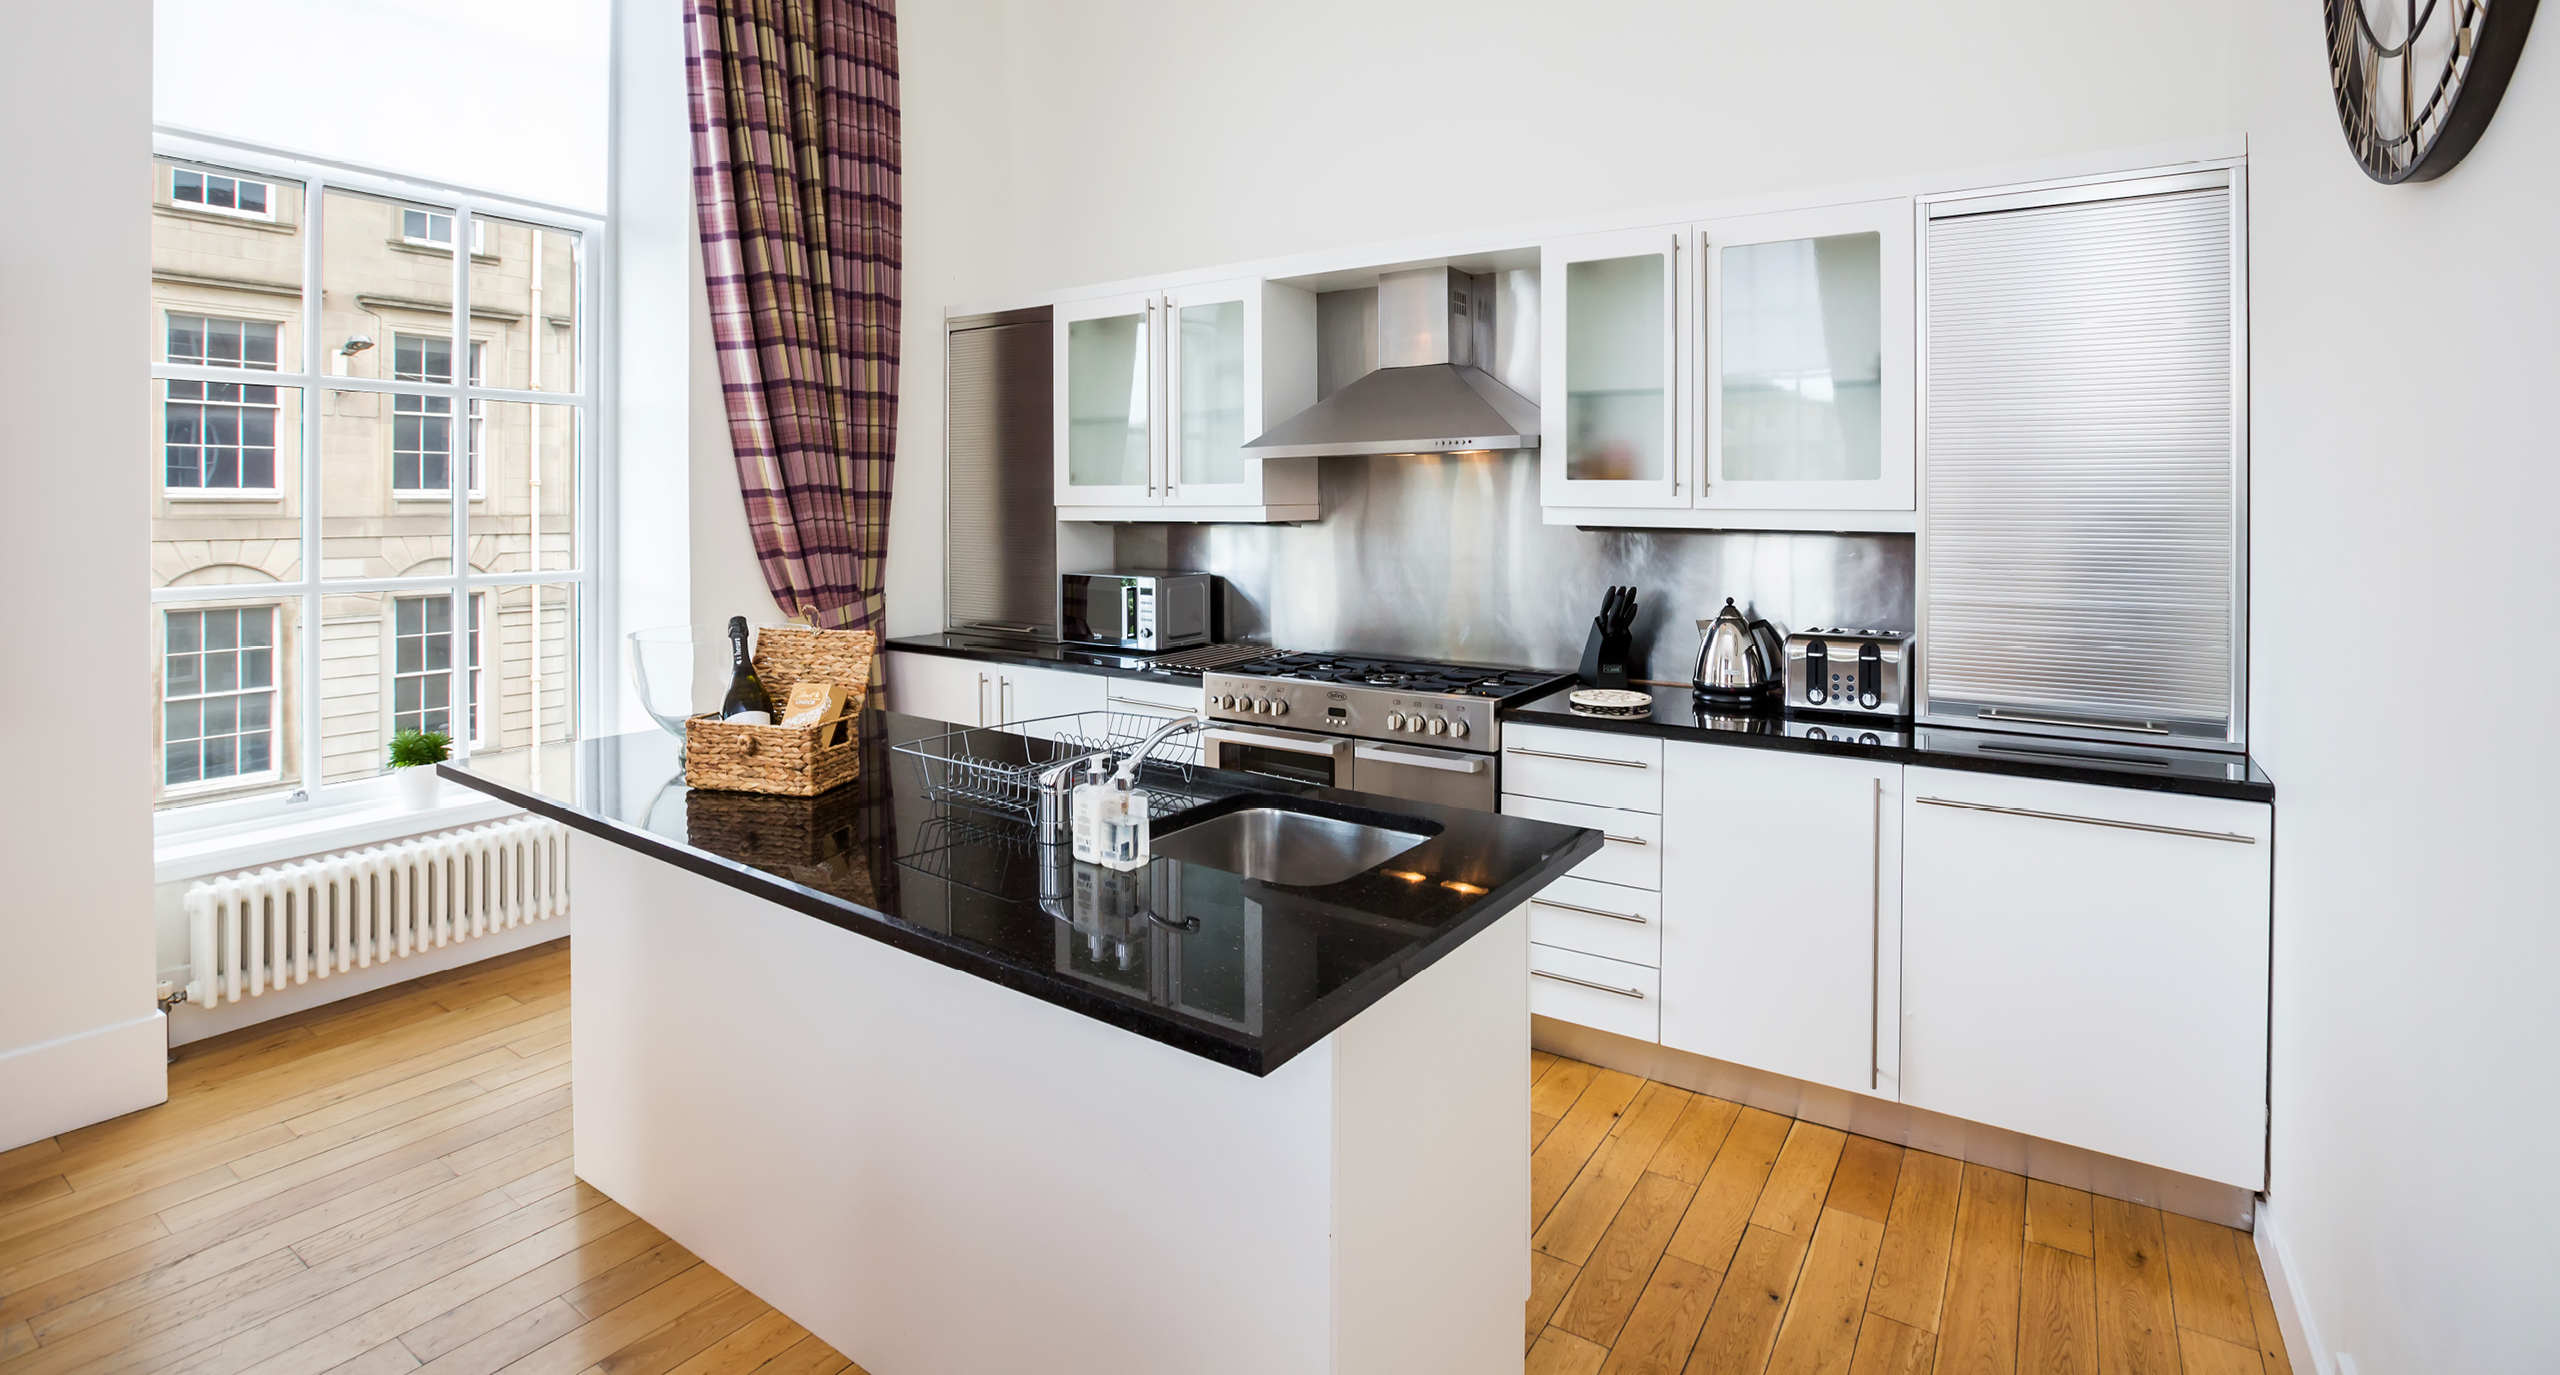 Blythswood Square Apartments Kitchen